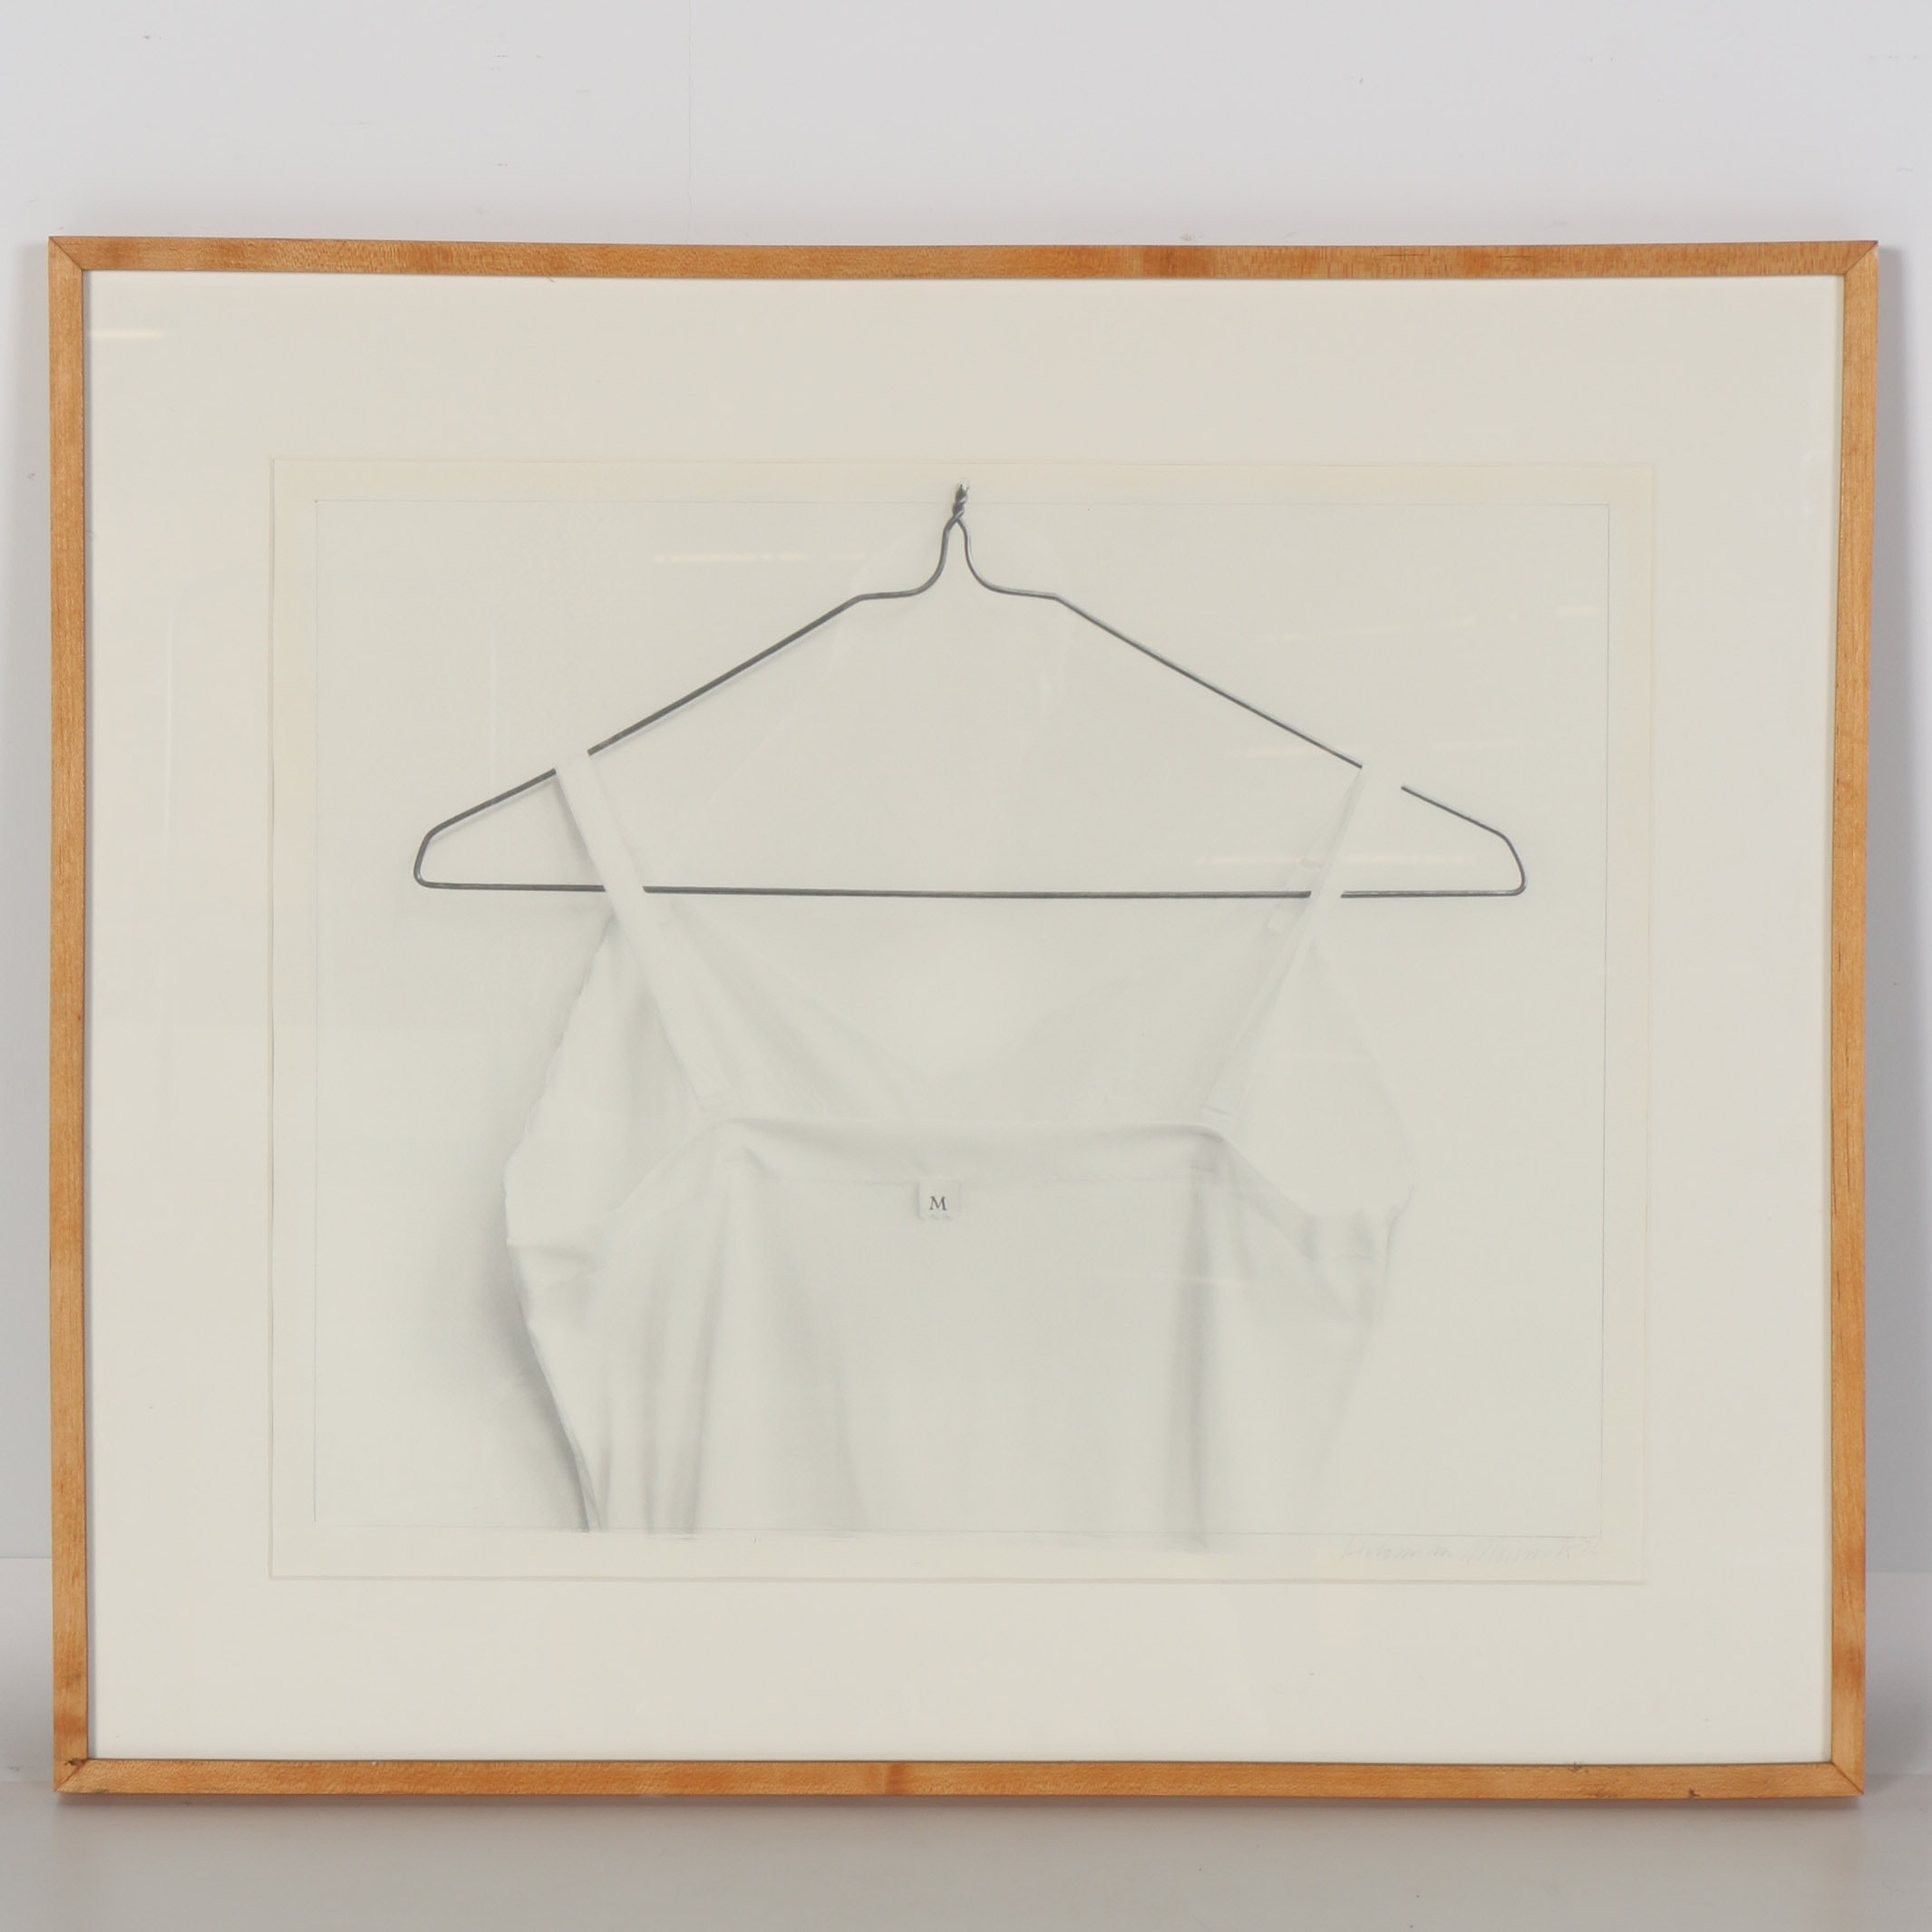 1976 Signed Original Drawing of a White Shirt